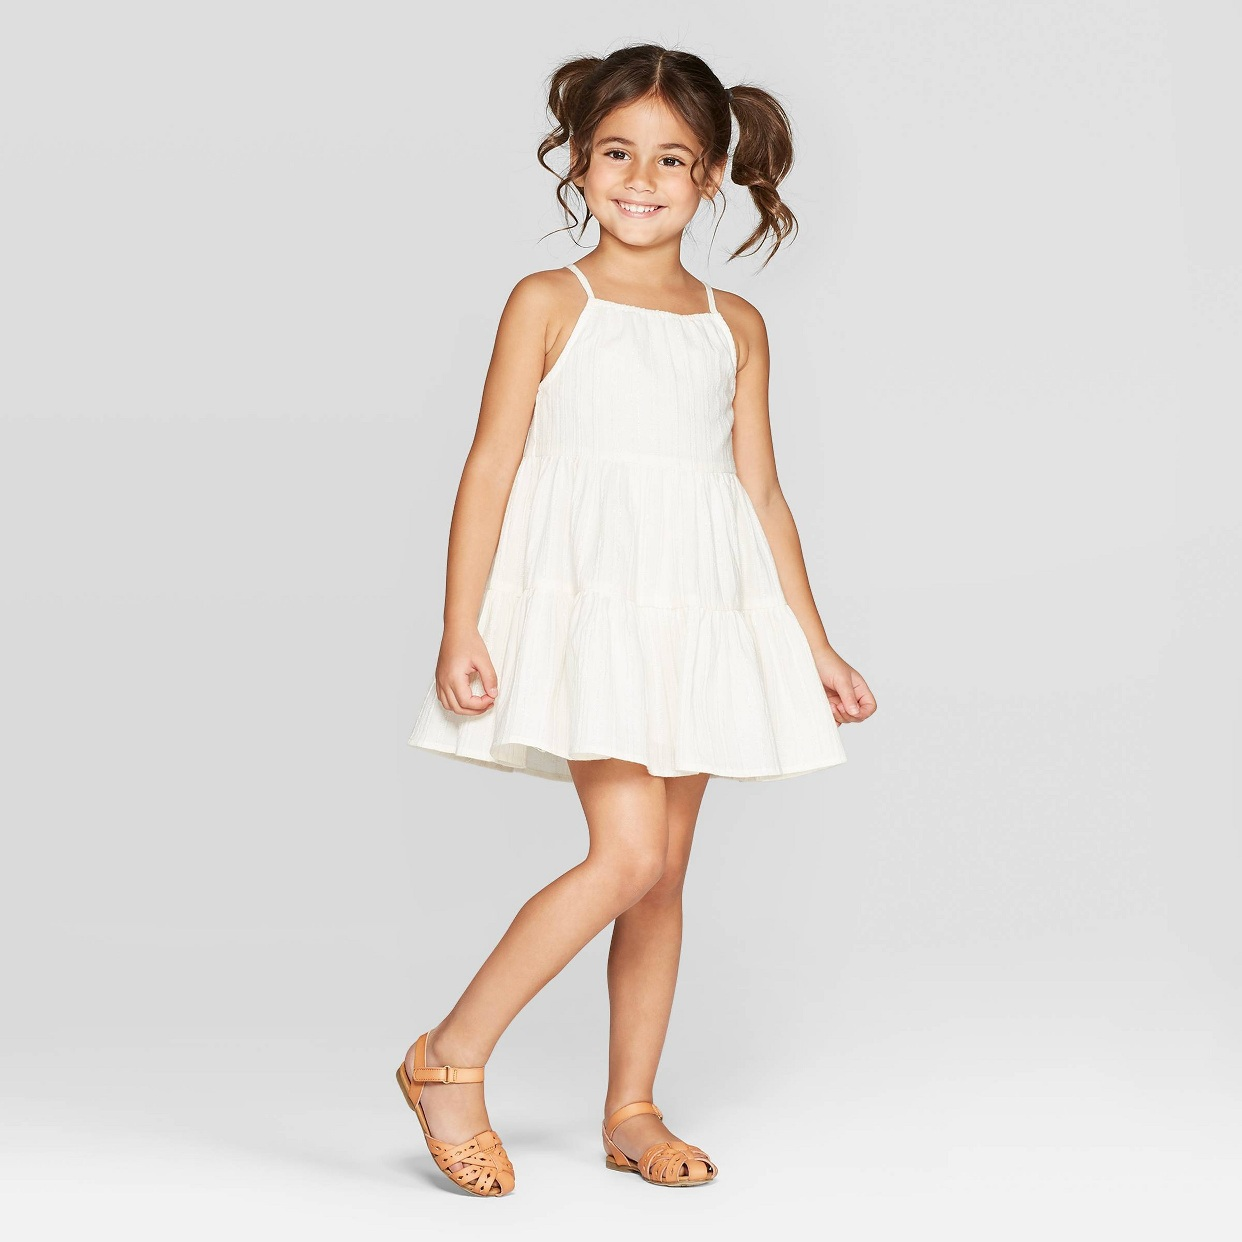 - This dress totally matches the mama version above!Find it here.